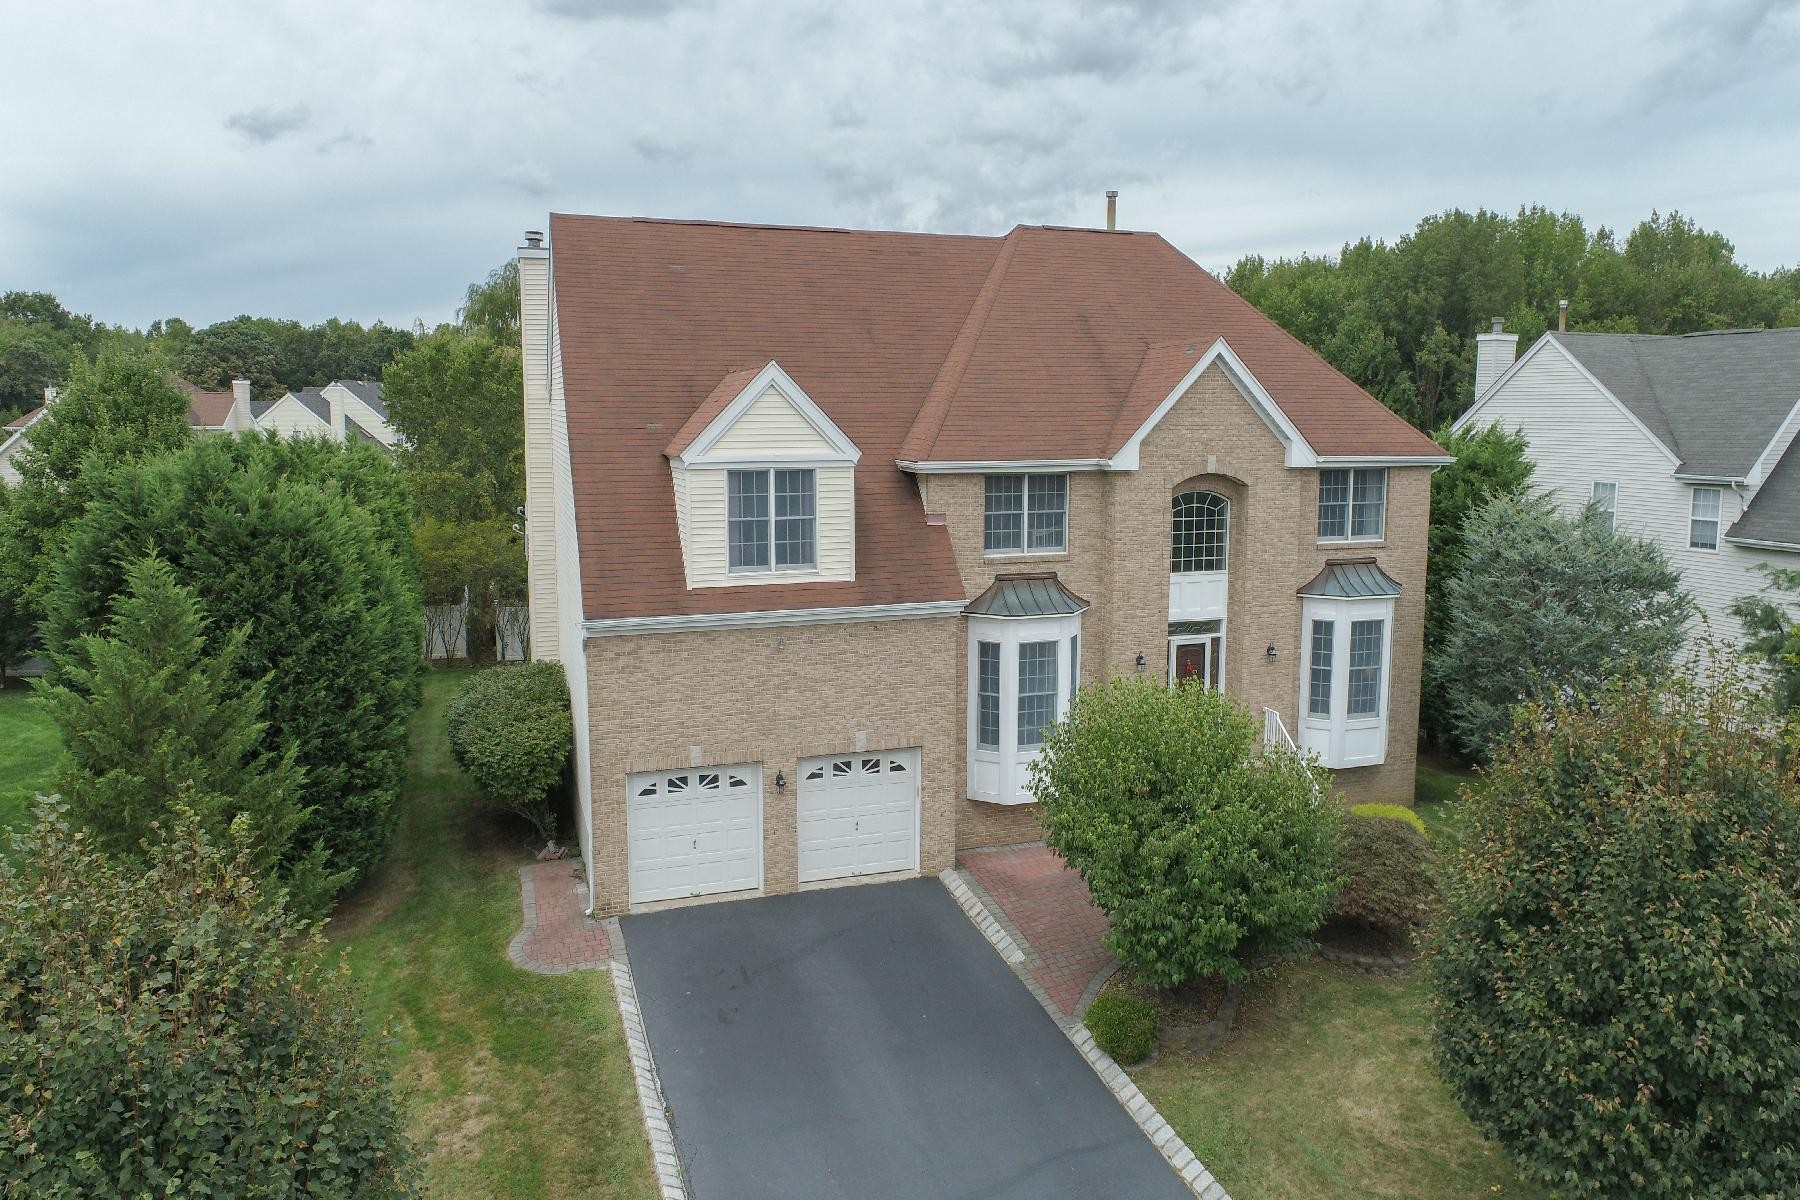 Single Family Homes for Active at 204 Hickory Lane Morganville, New Jersey 07751 United States